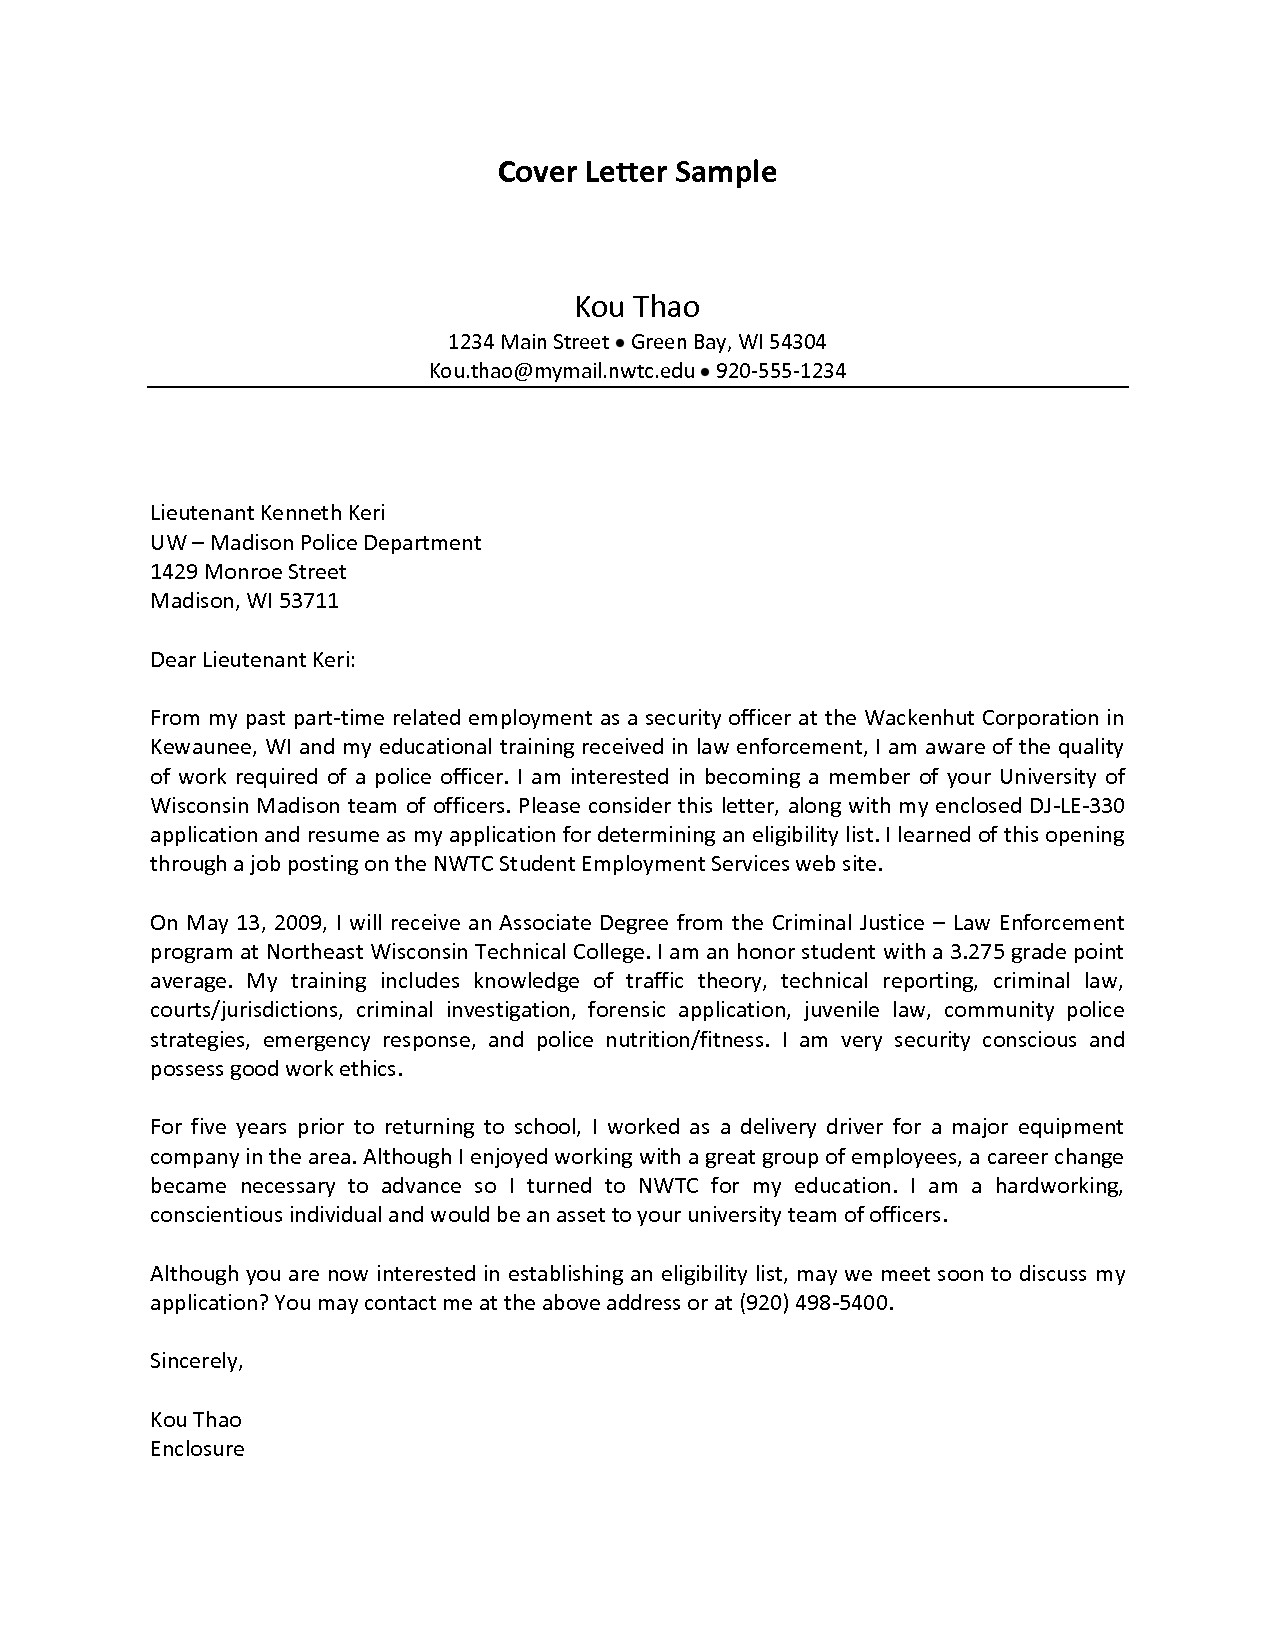 Cover Letter For Police Chief Position Templates Educational